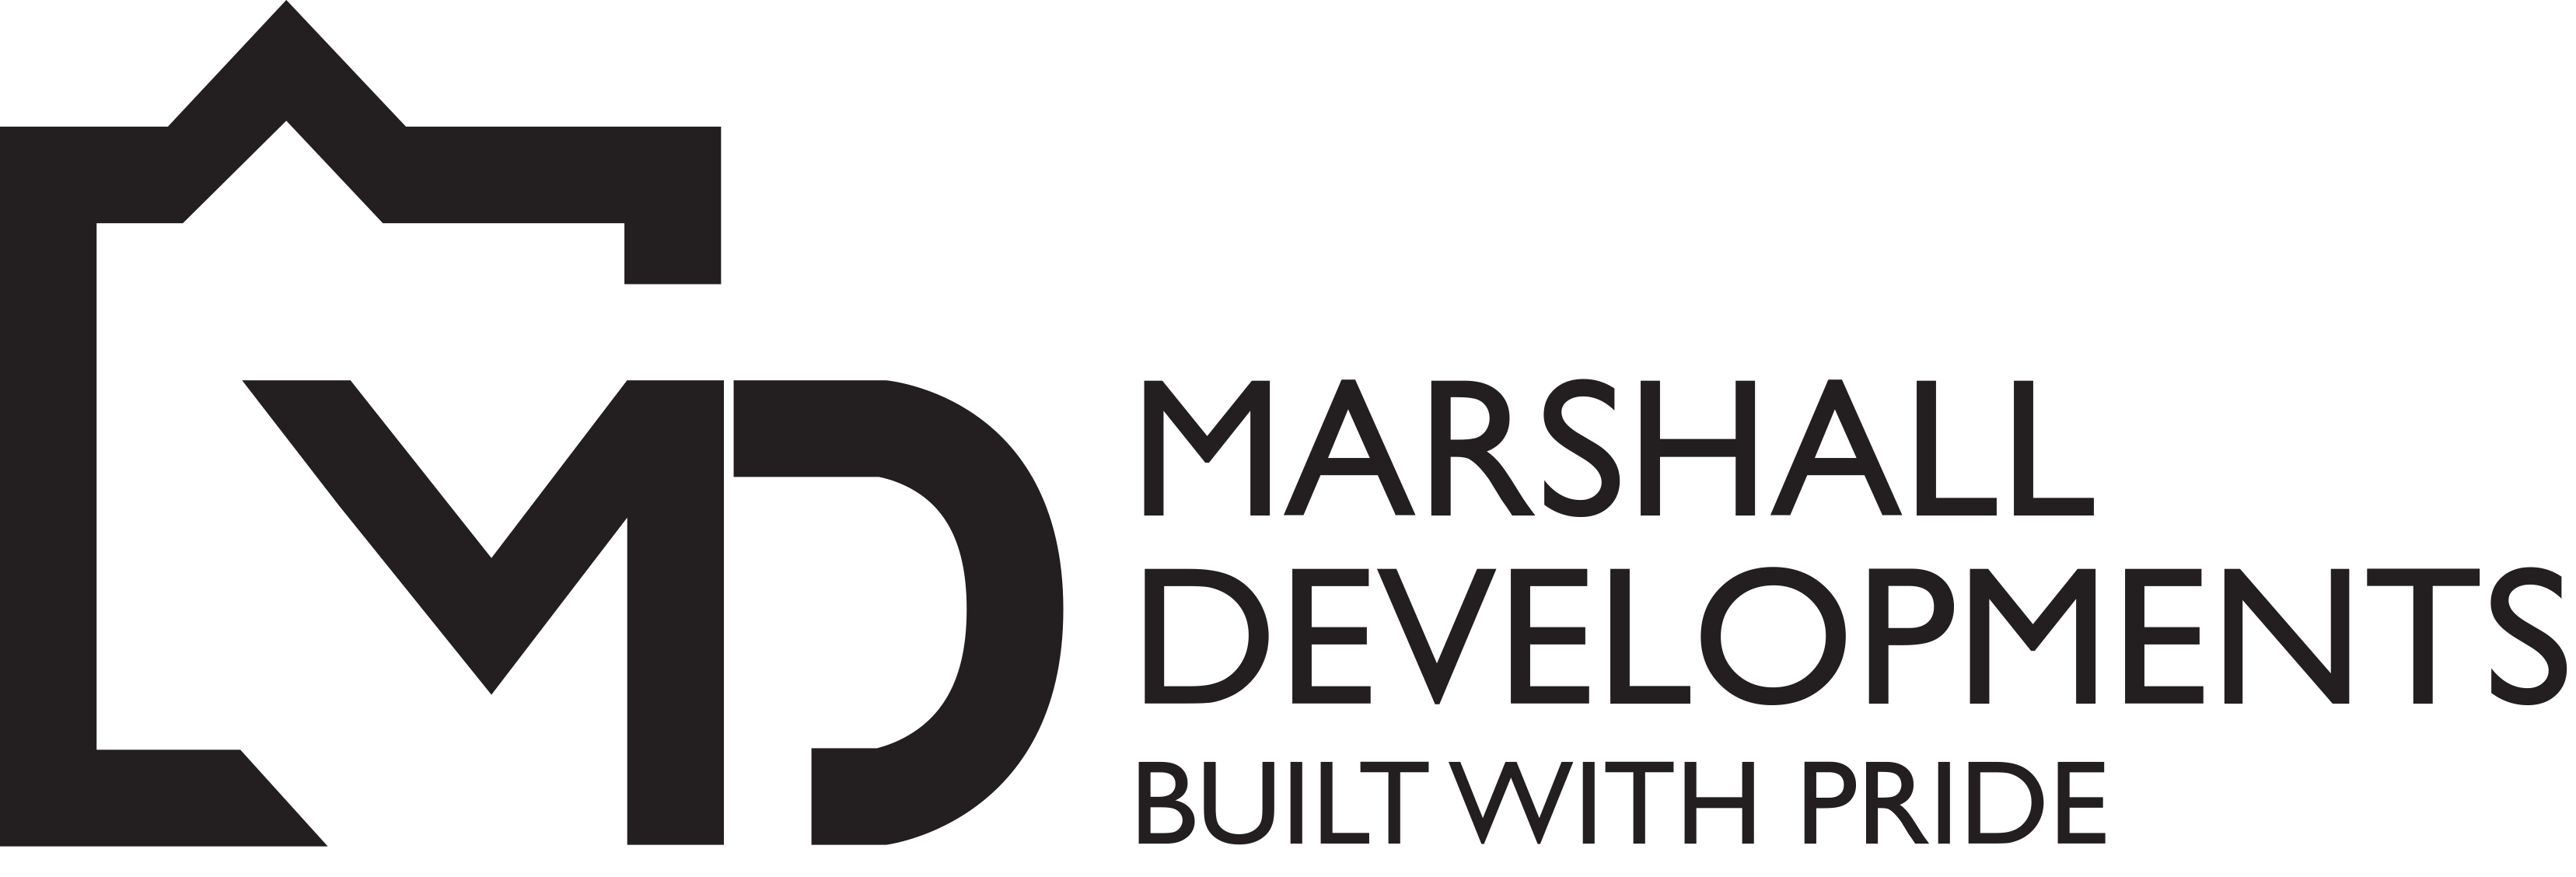 Marshall Developments Sticky Logo